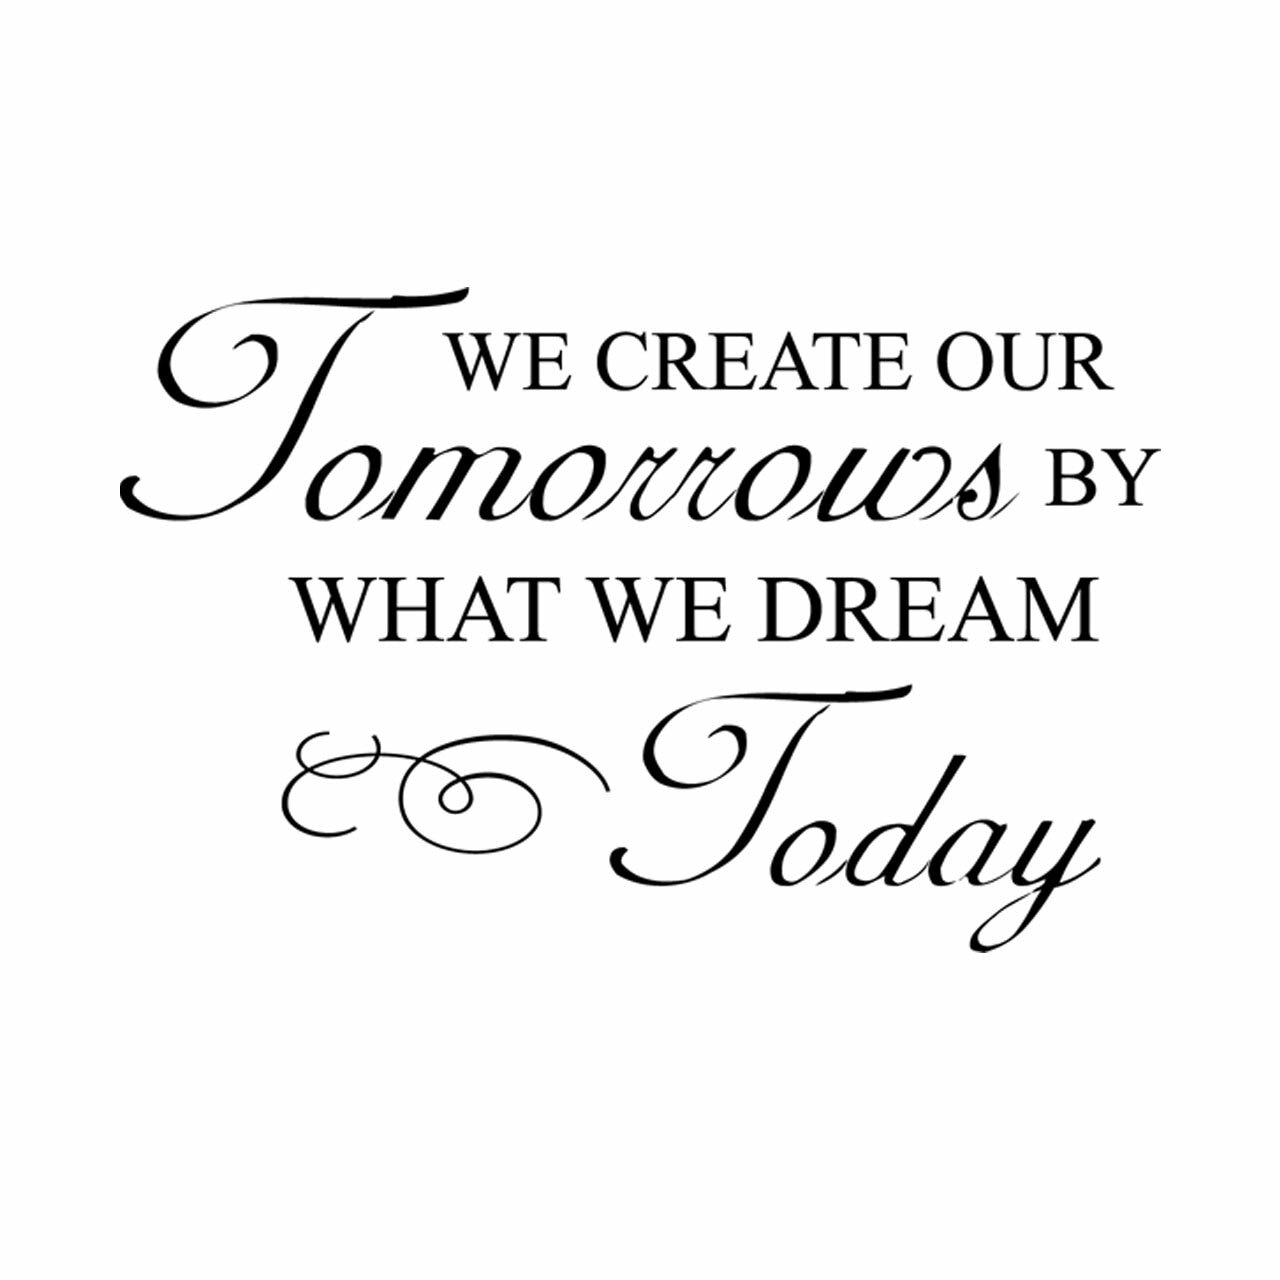 We create our tomorrows by what we dream today vinyl wall saying in black on white wall over couch with blue cushions